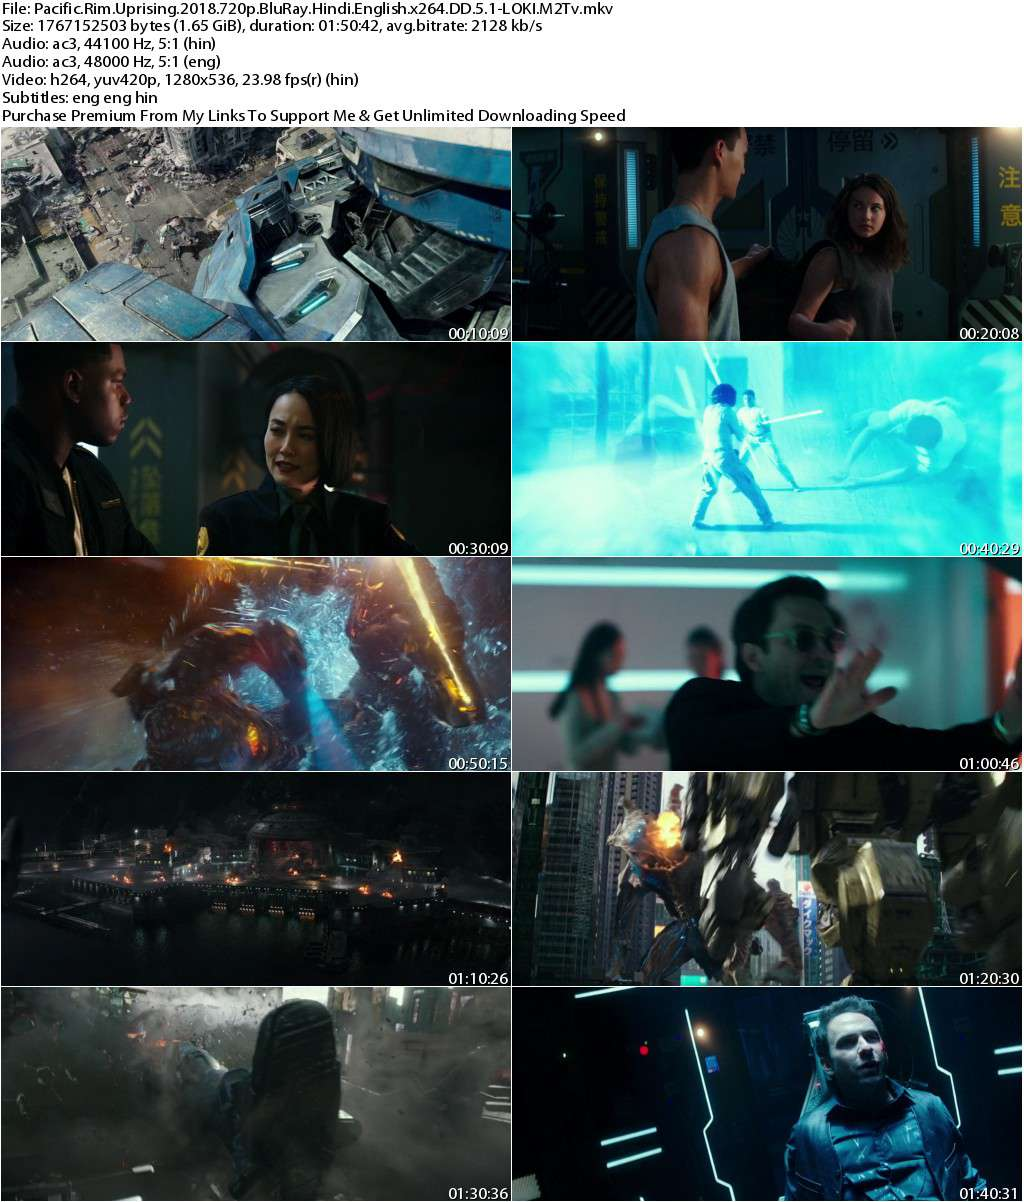 Pacific Rim Uprising (2018) 720p BluRay Dual Audio [Hindi+English] x264 DD 5.1-LOKI M2Tv